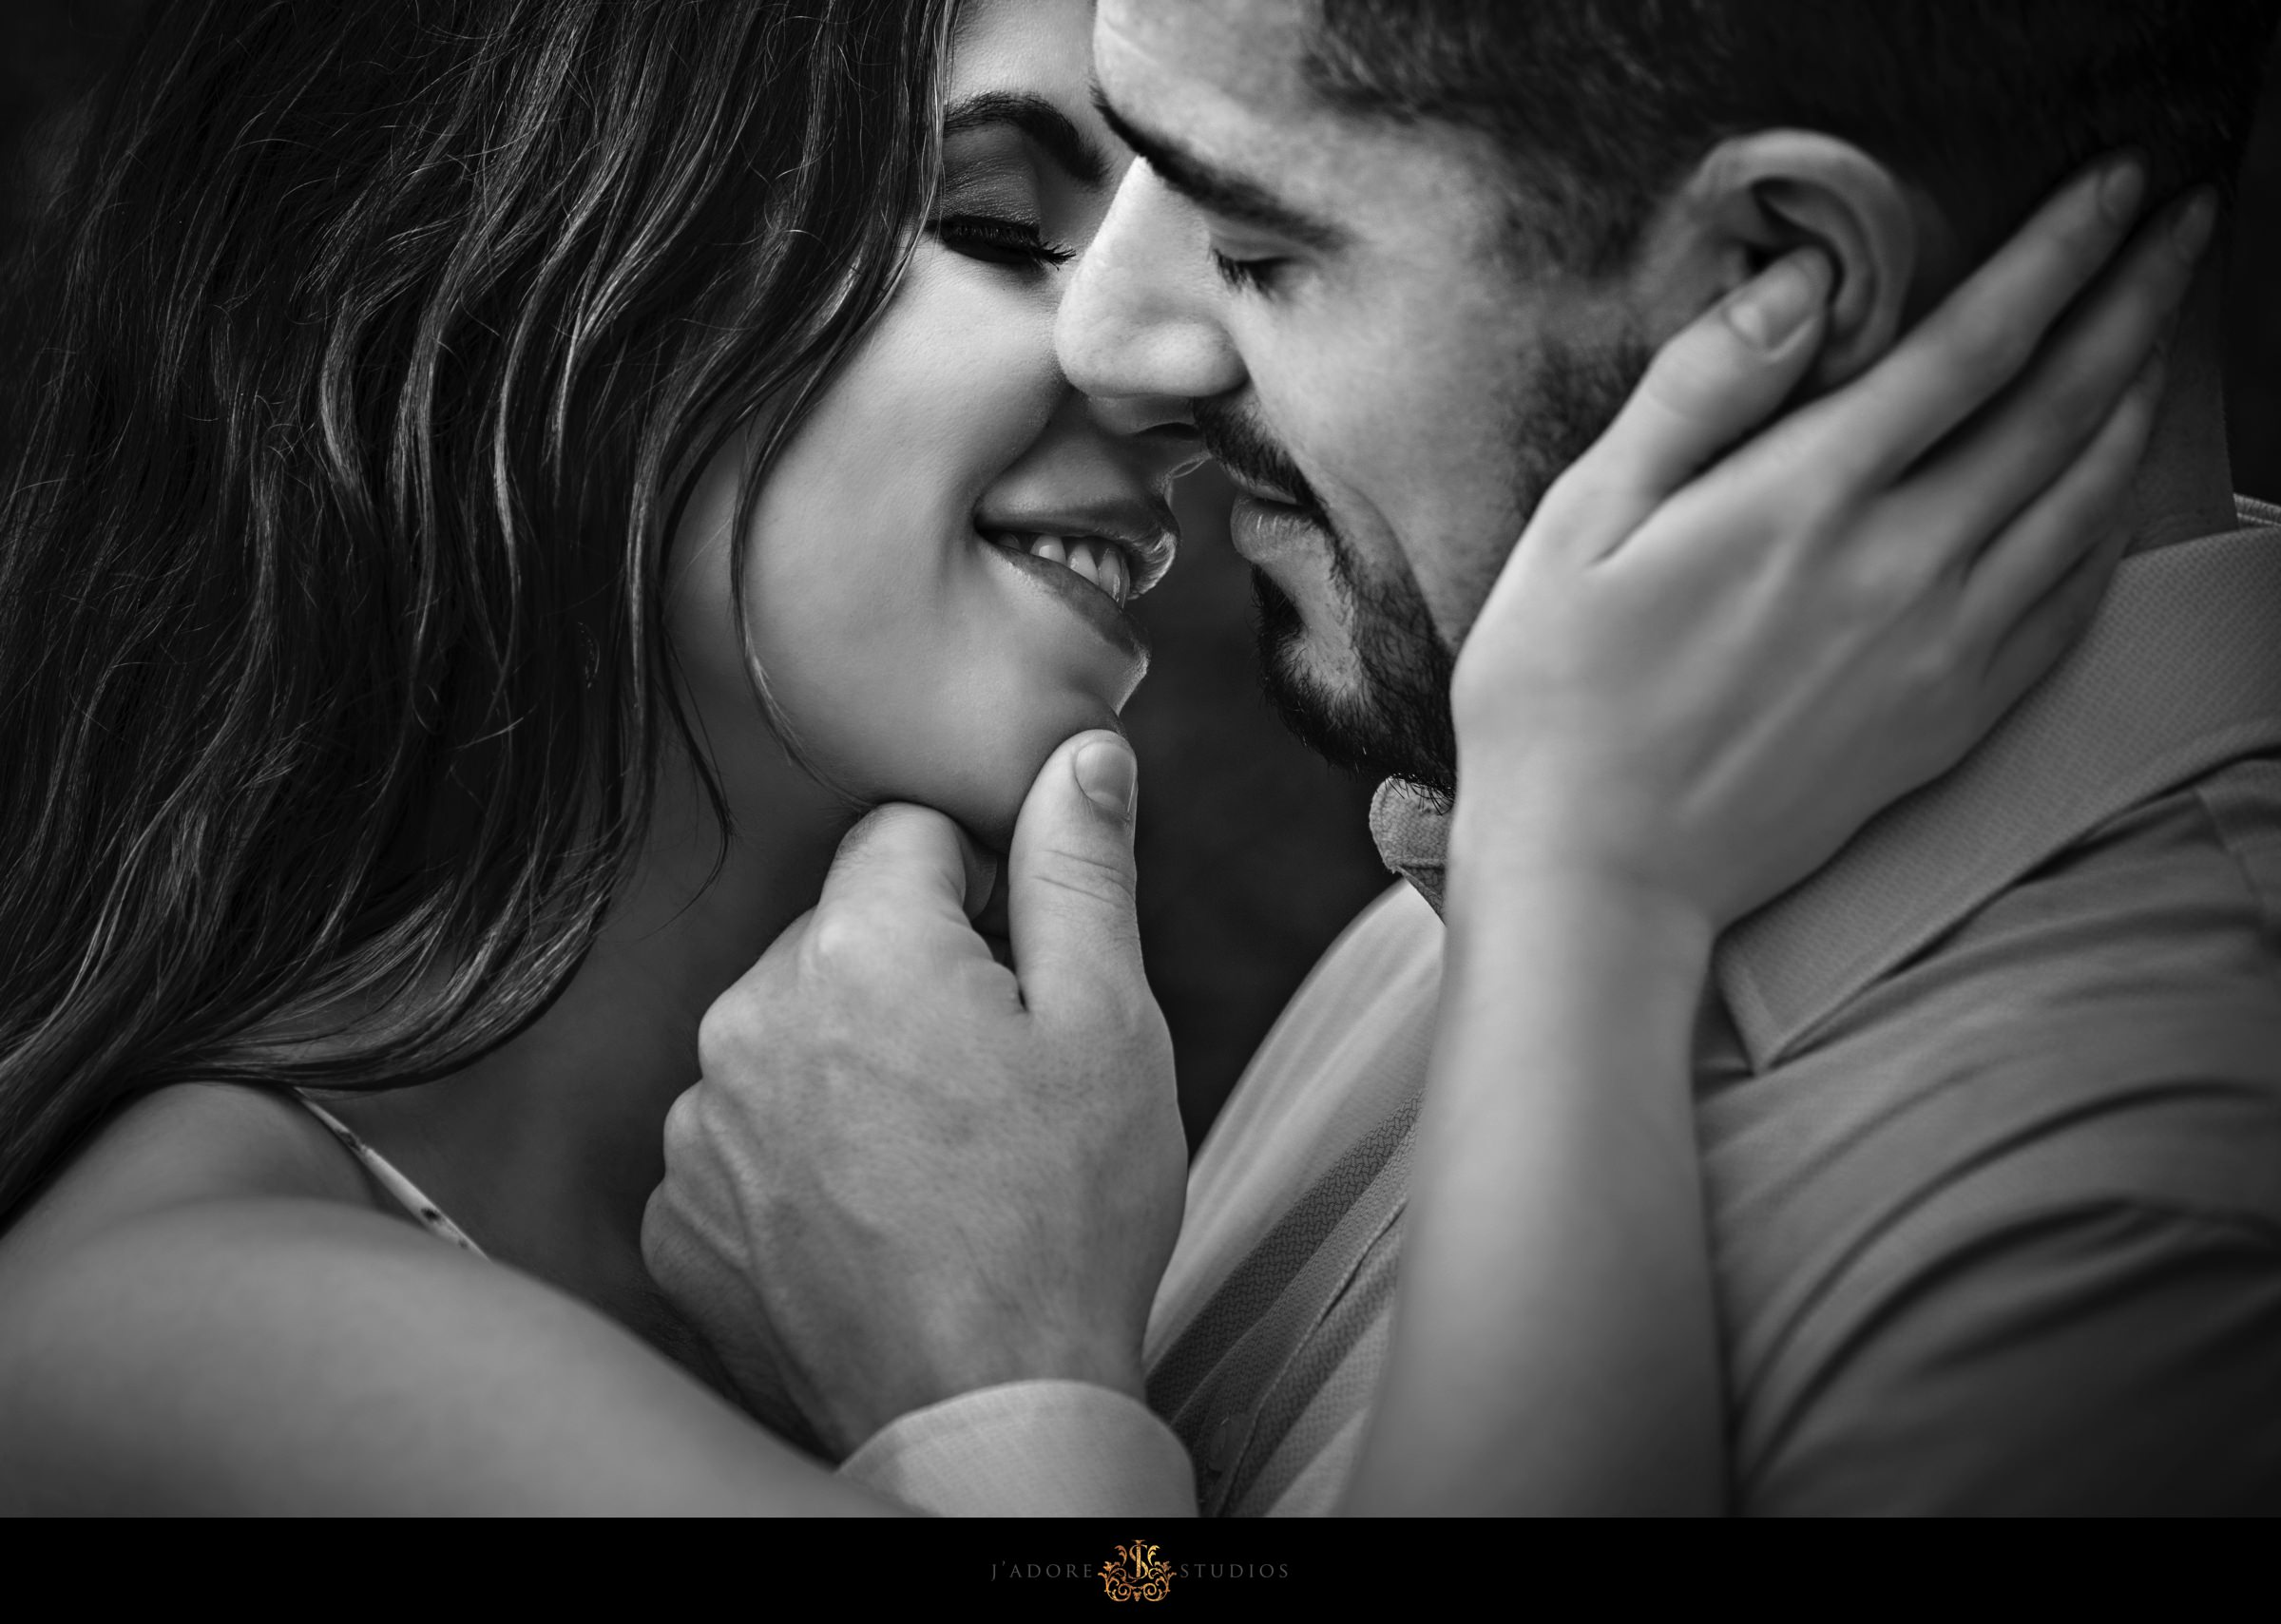 Black and white close up photo of couple holding each other and almost kissing